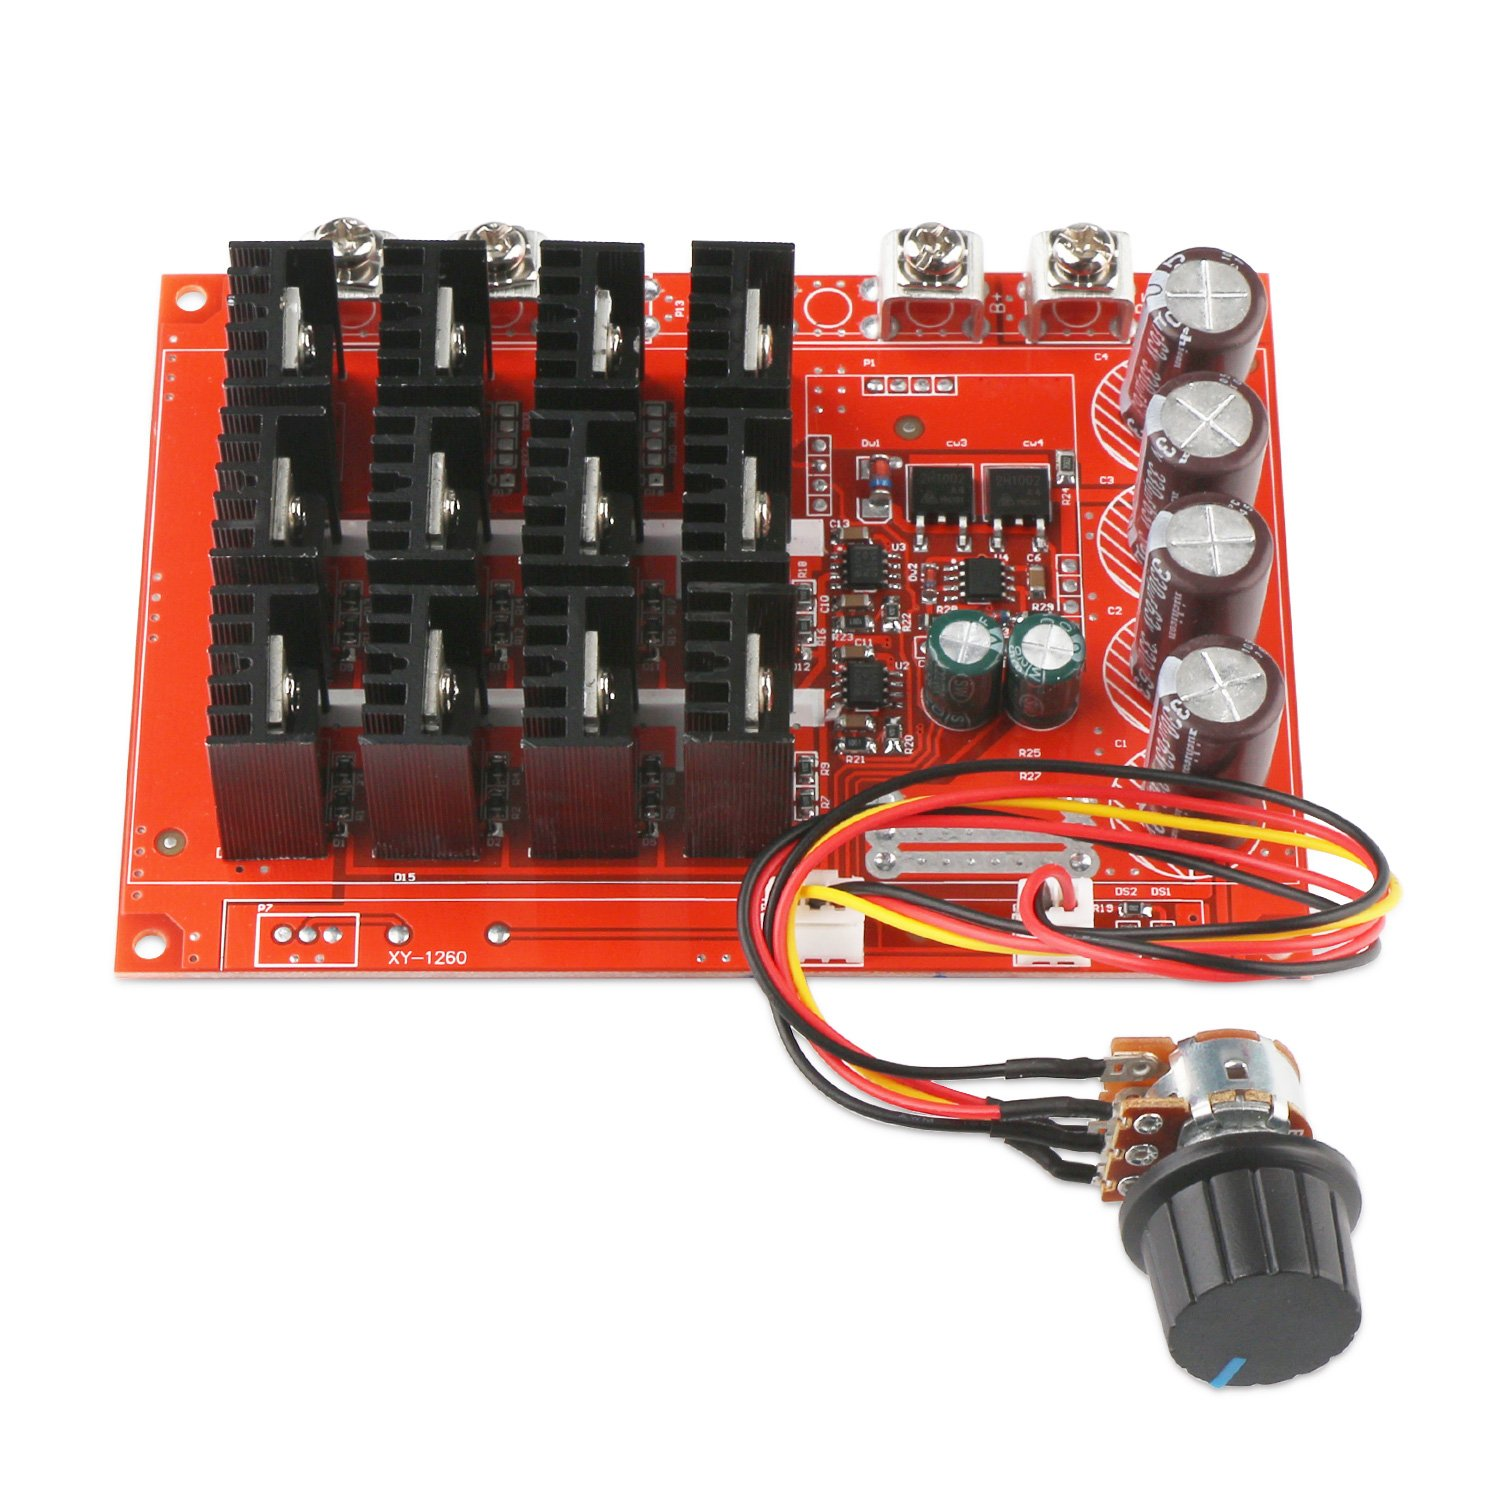 Motor Speed Control Board, DROK DC 10-50V 60A High Power Motor Speed Controller PWM HHO Driver Controller Module 12V 24V 48V 3000W Extension Cord with Switch by DROK (Image #2)